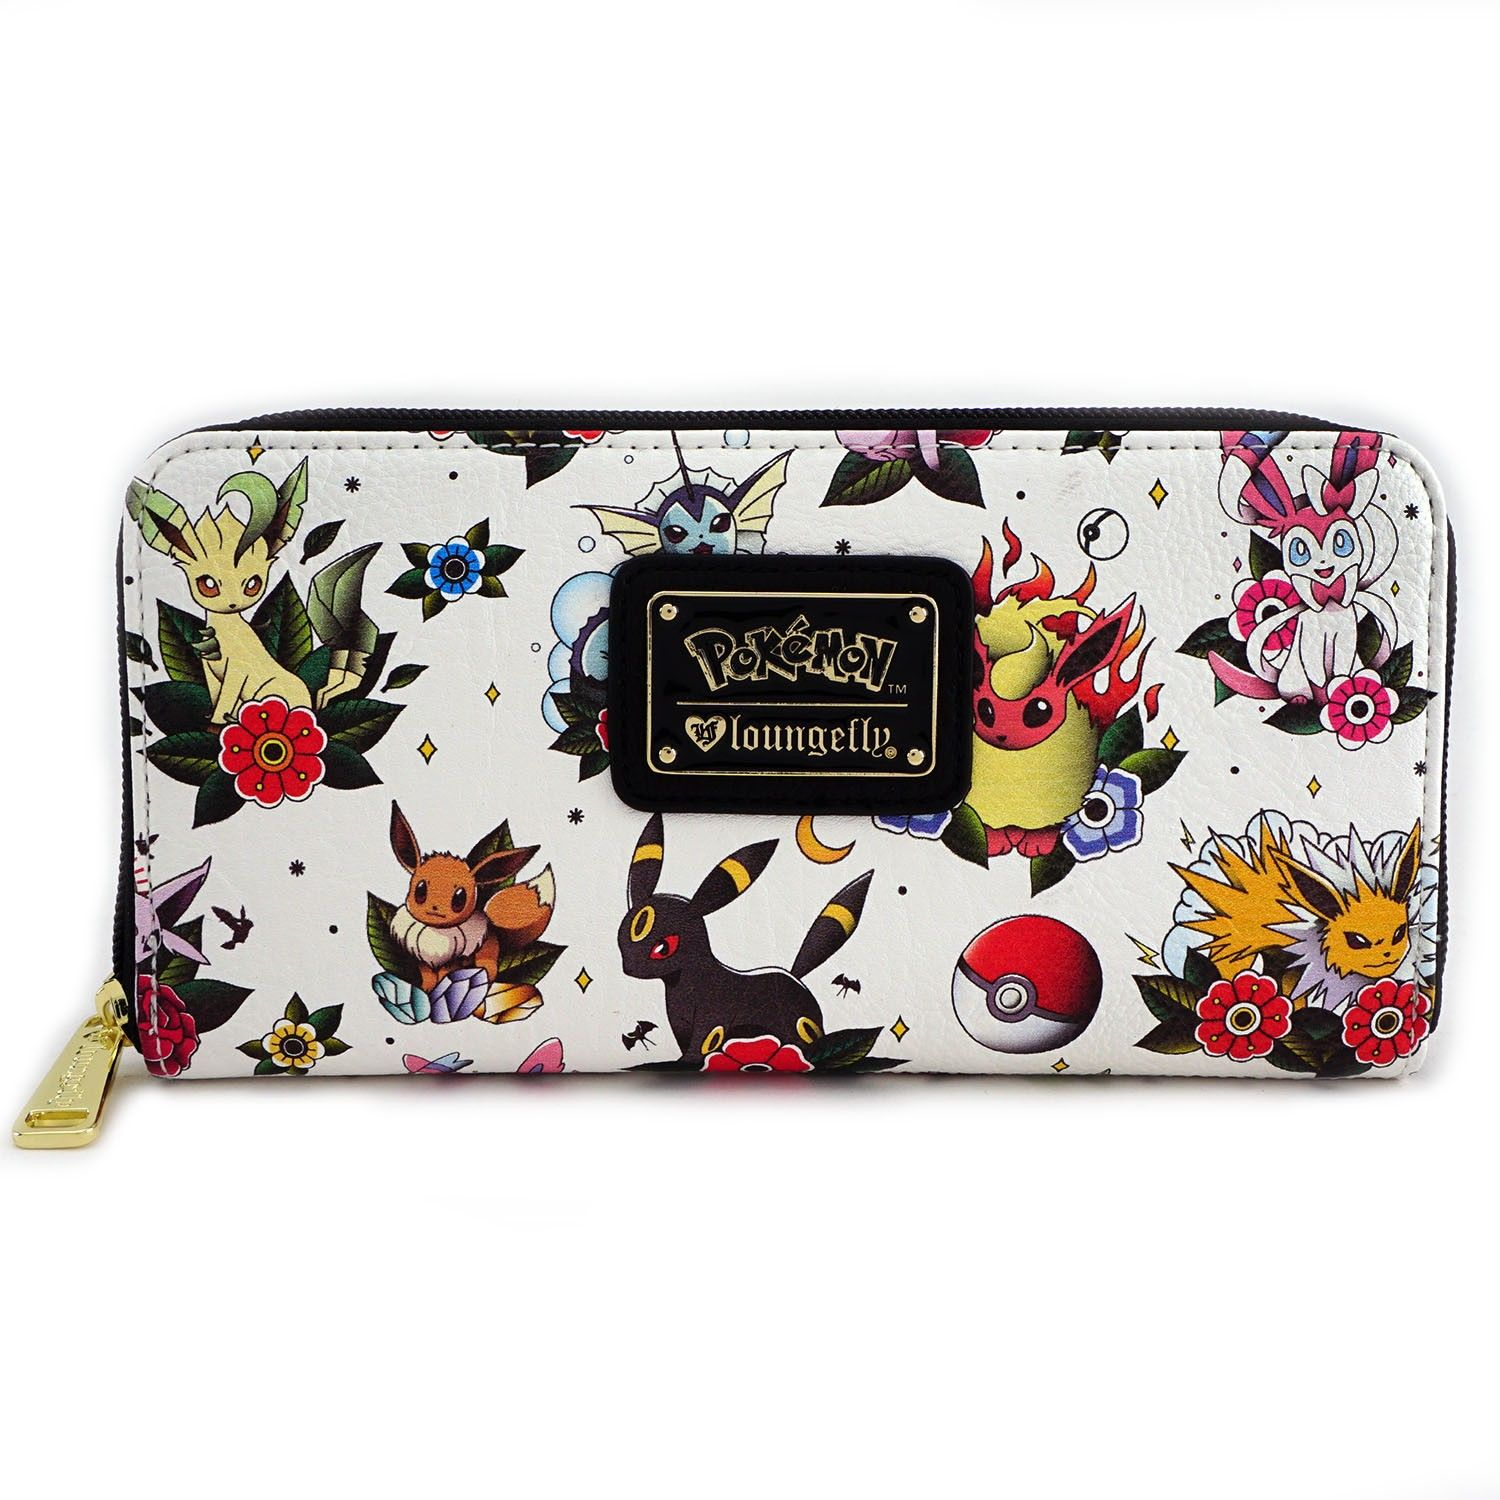 Loungefly x Pokémon Eevee Evolution Tattoo Flash Print Wallet - Wallets 1c3bb253b4d1f